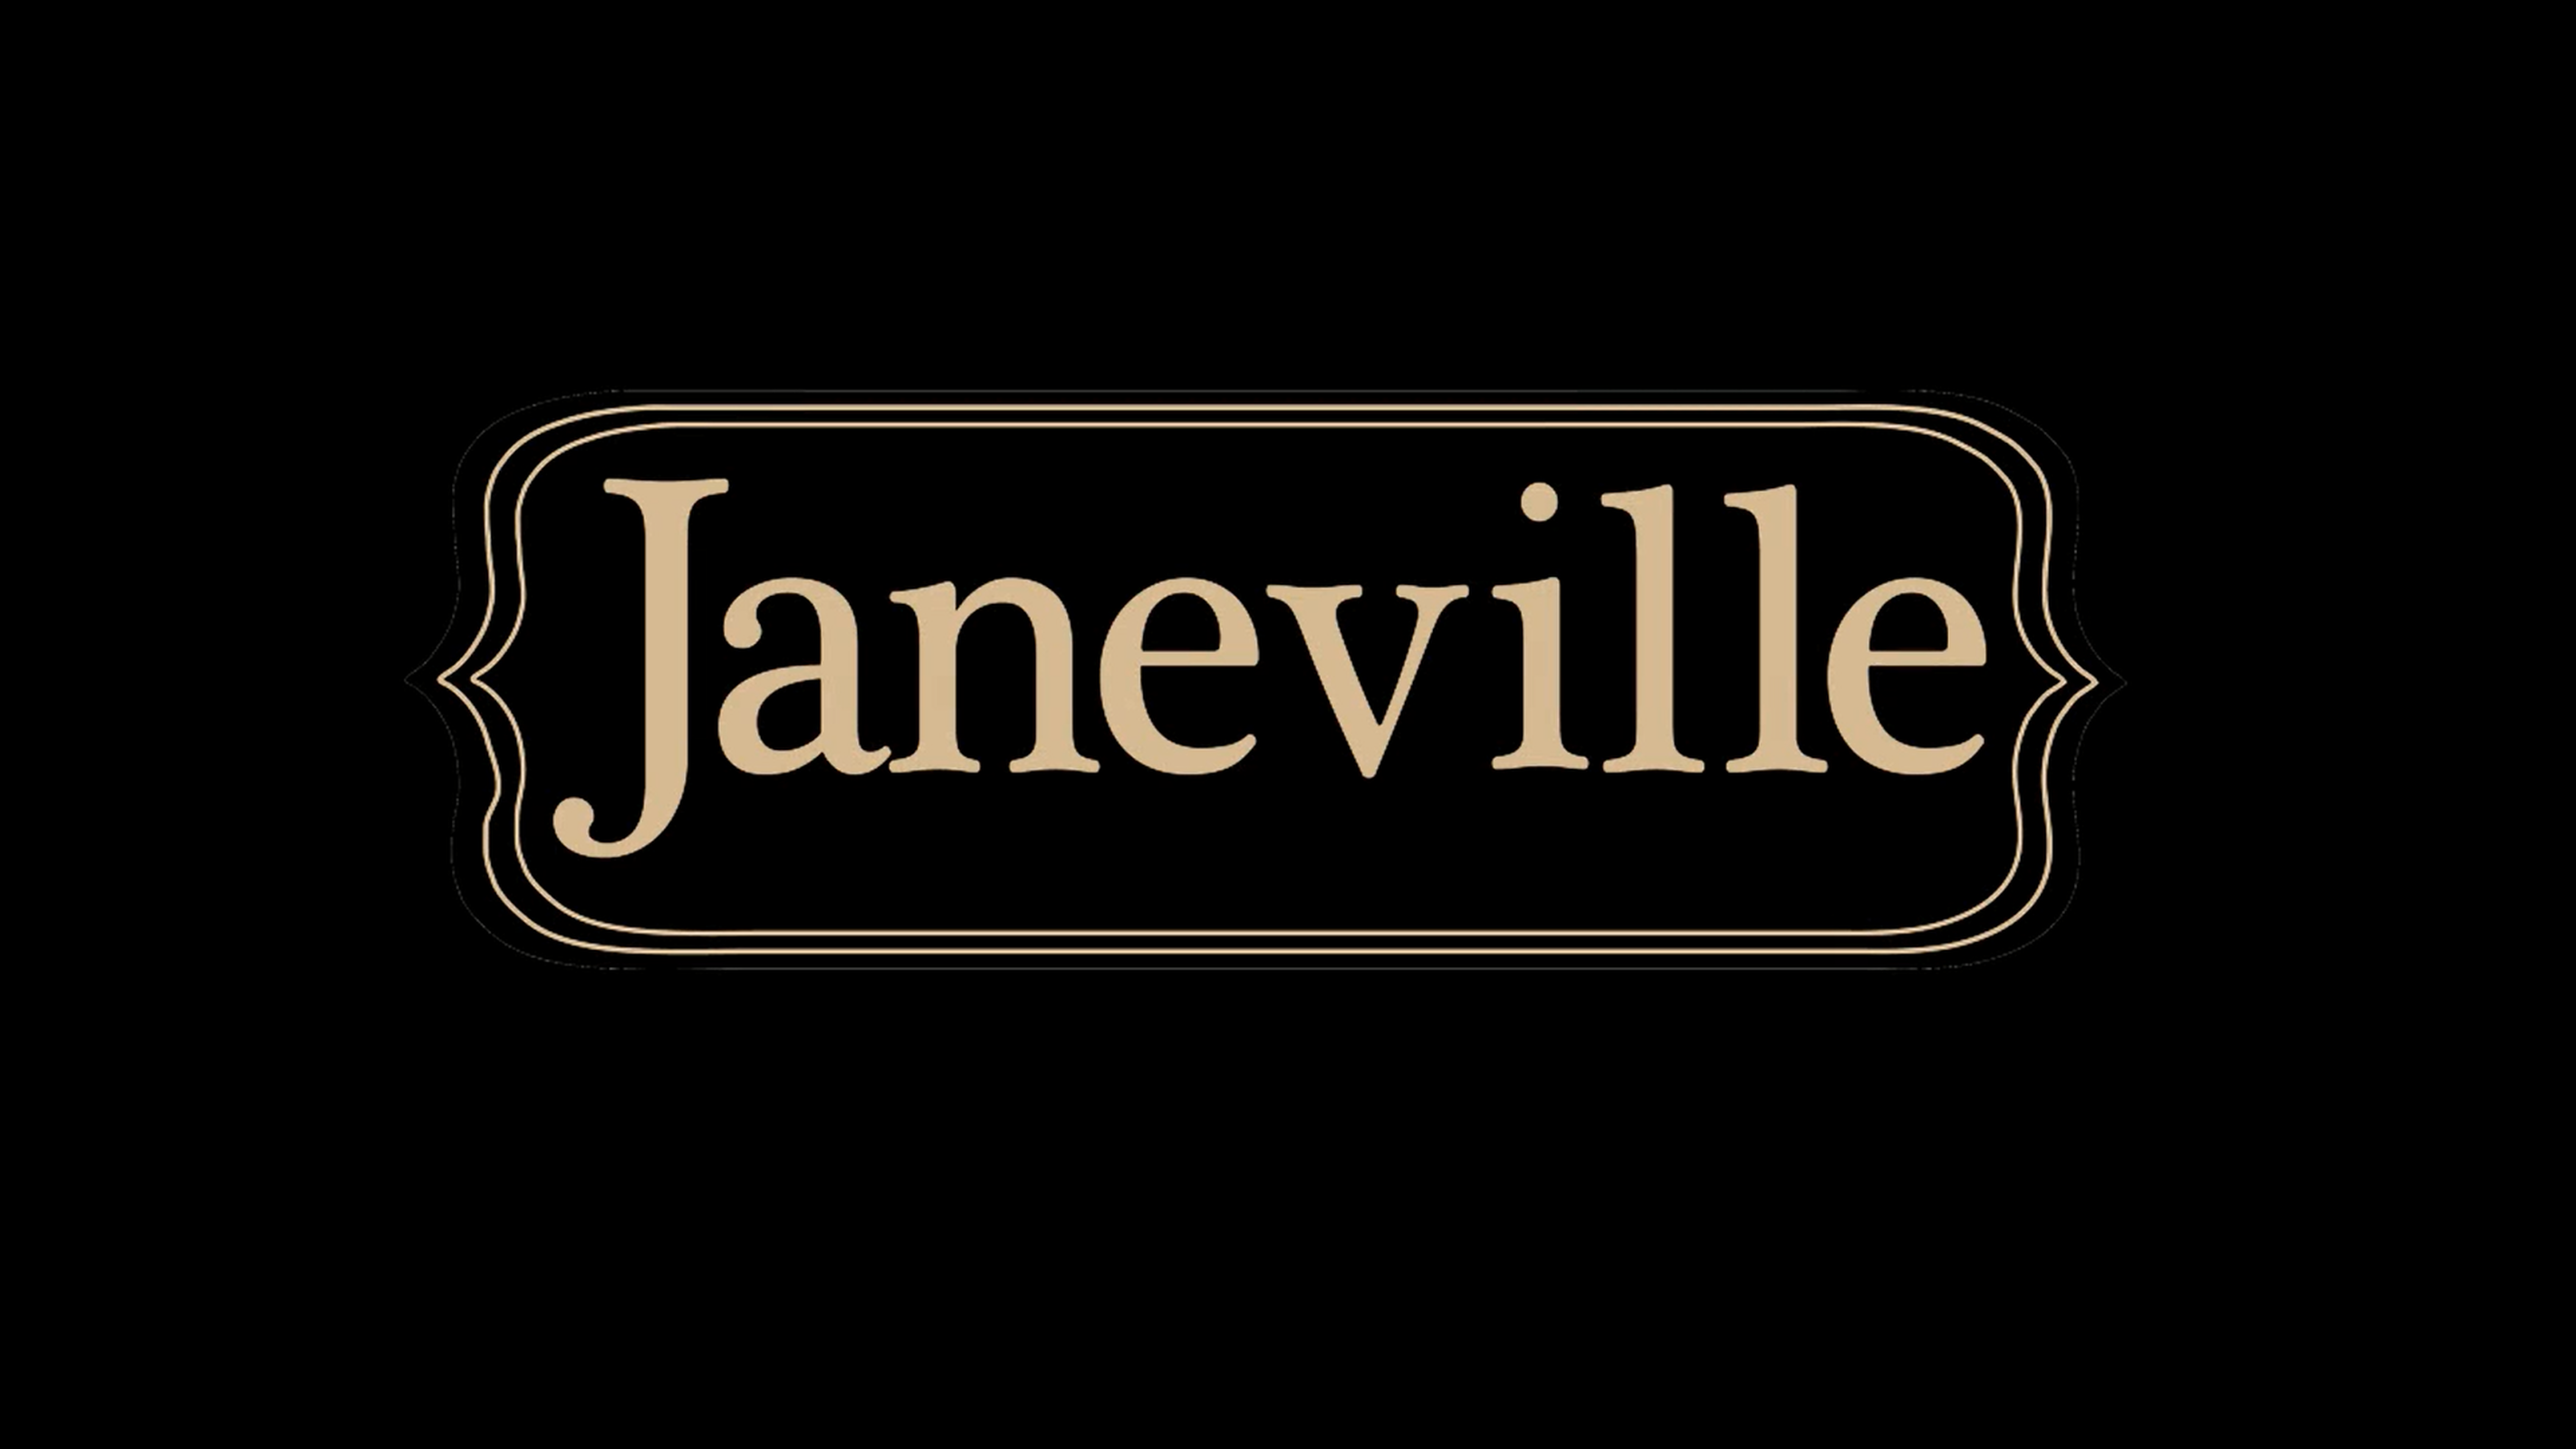 A10 House Type, 'Janeville', Carrigaline, Co. Cork